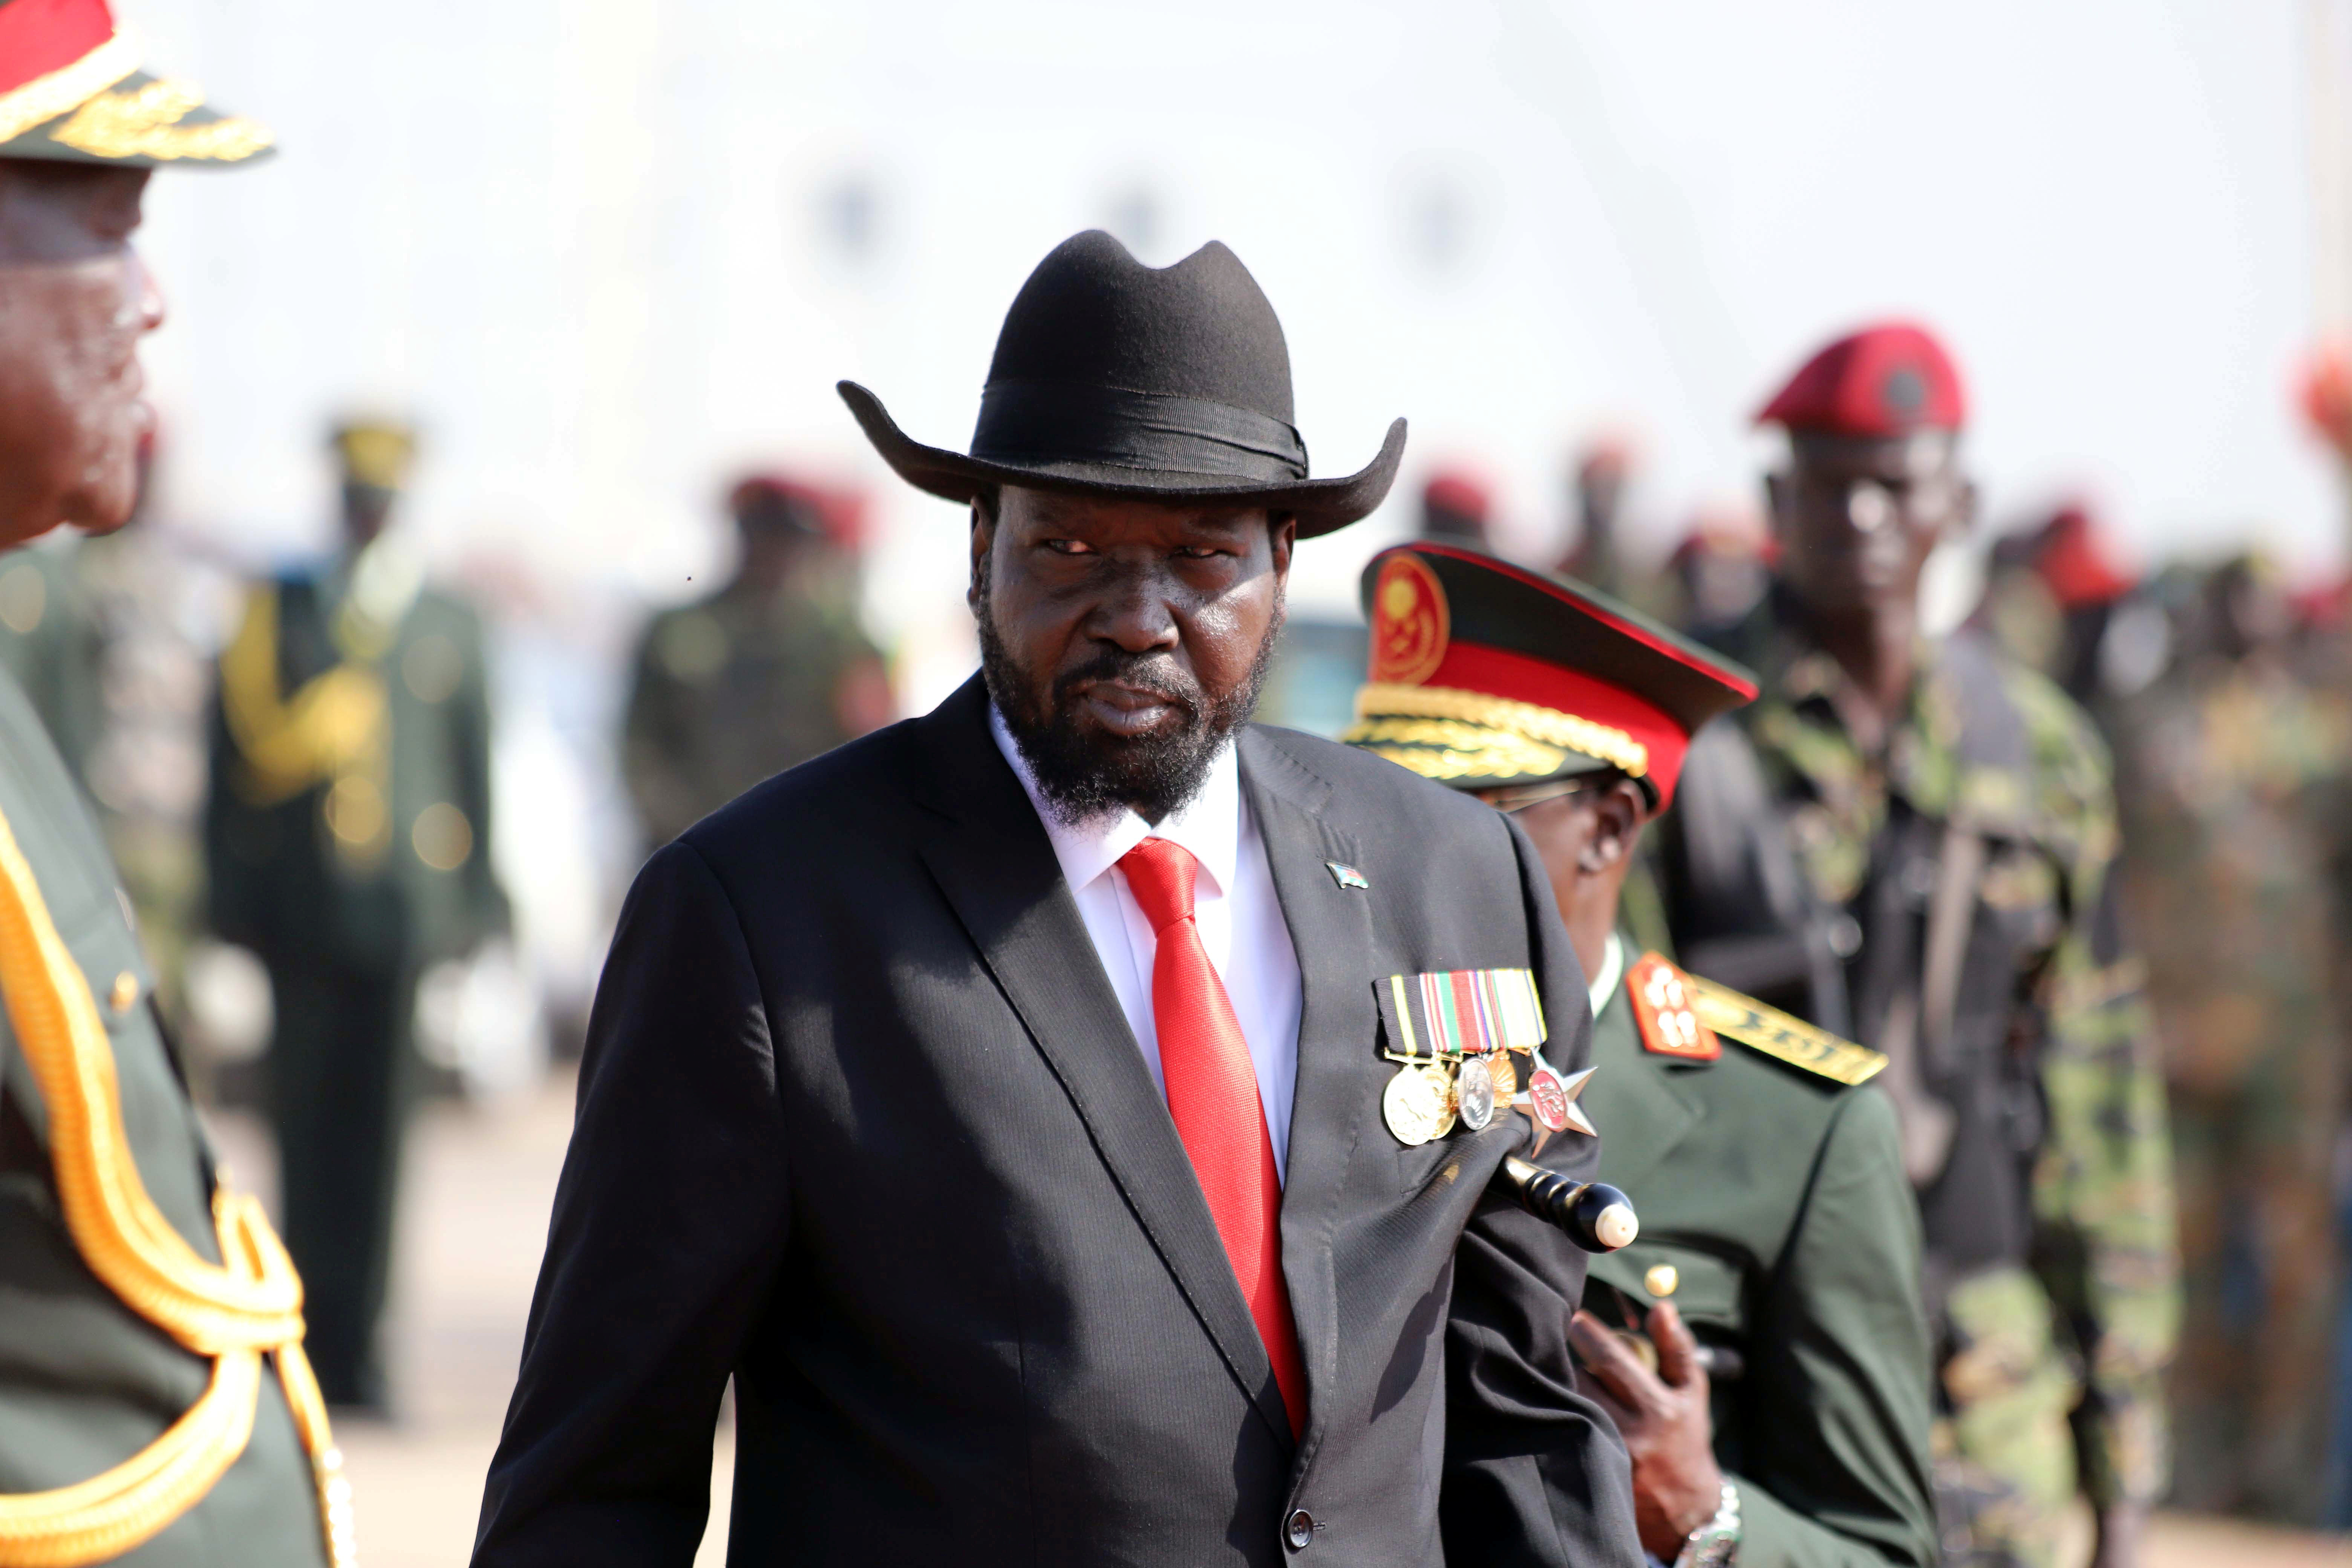 South Sudan's president Salva Kiir attends a medals awarding ceremony for long serving servicemen of the South Sudan People's Liberation Army in the Bilpam, military headquarters in Juba, South Sudan Jan. 24, 2019.